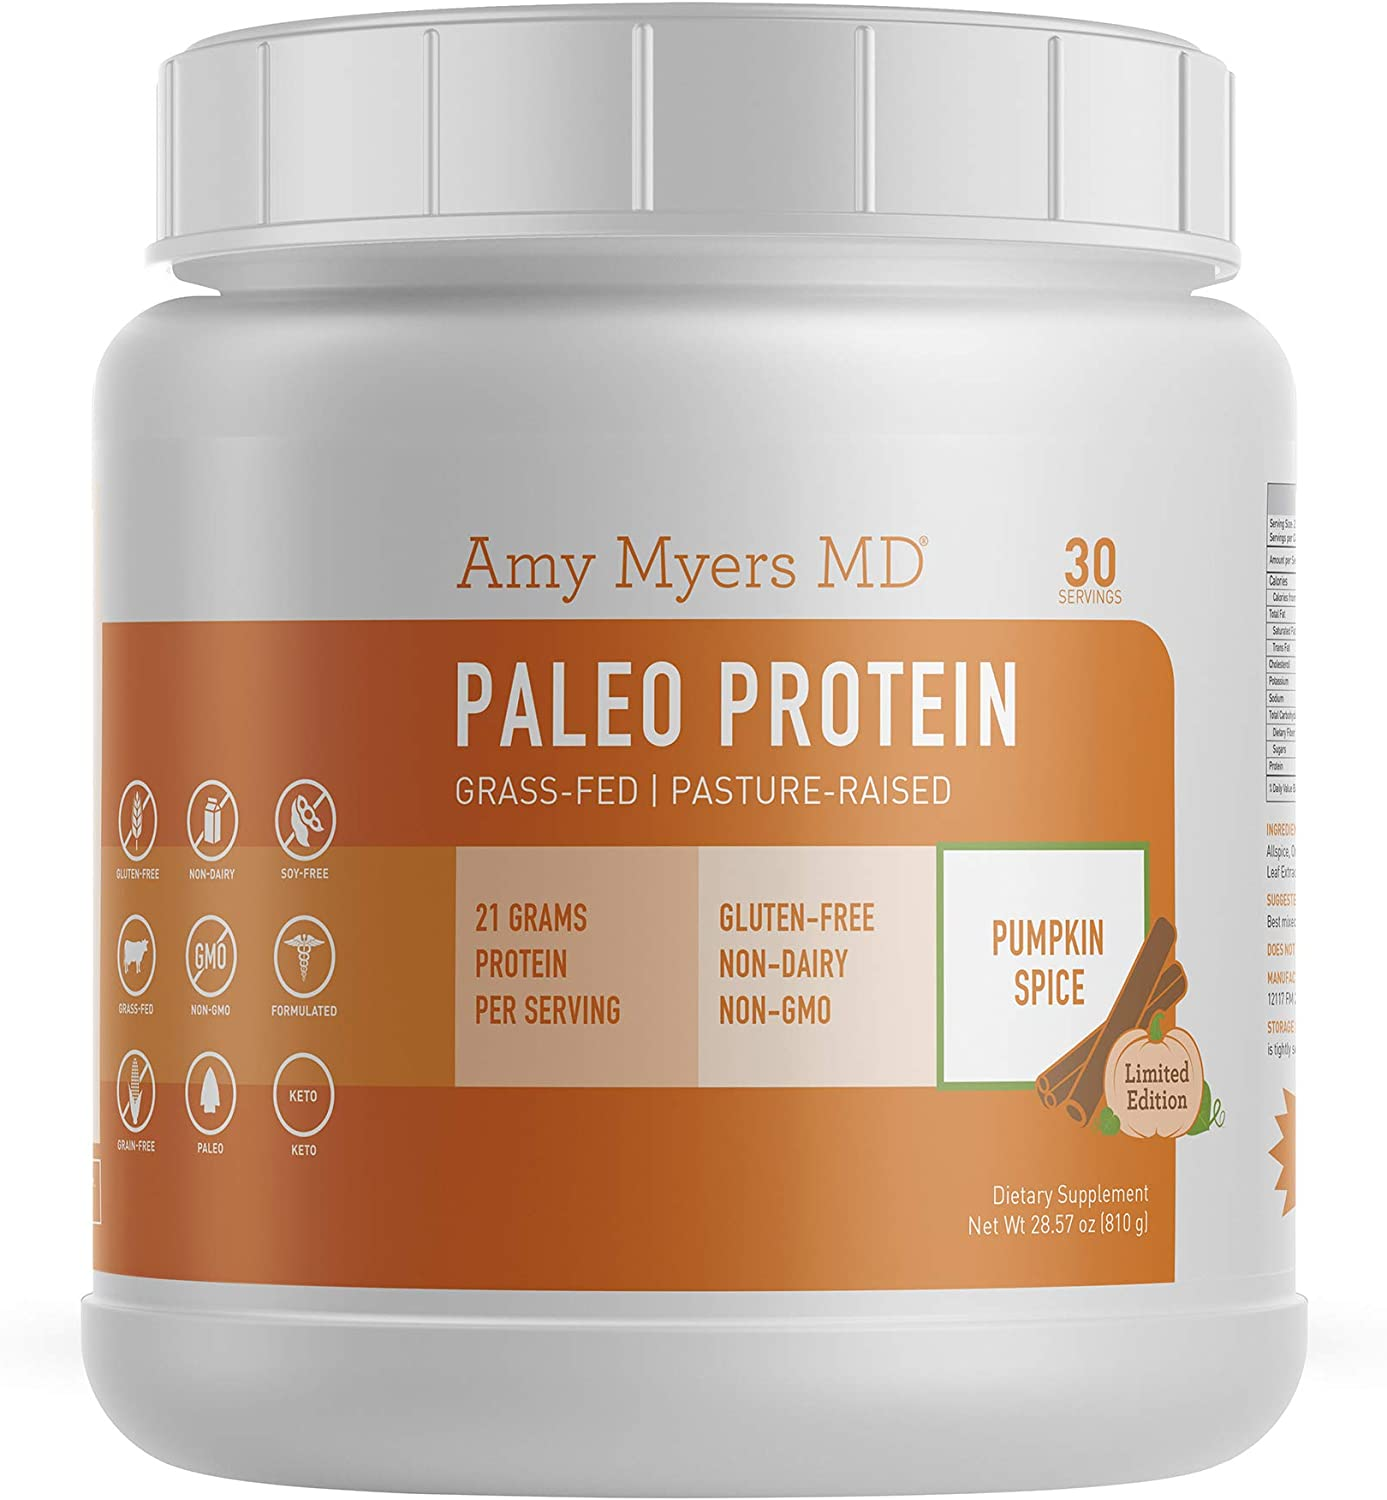 Seasonal Limited Edition Pumpkin Spice Pure Paleo Protein by Dr. Amy Myers Clean Grass Fed, Pasture Raised Hormone Free Protein, Non-GMO, Gluten Dairy Free 21g Protein Per Serving